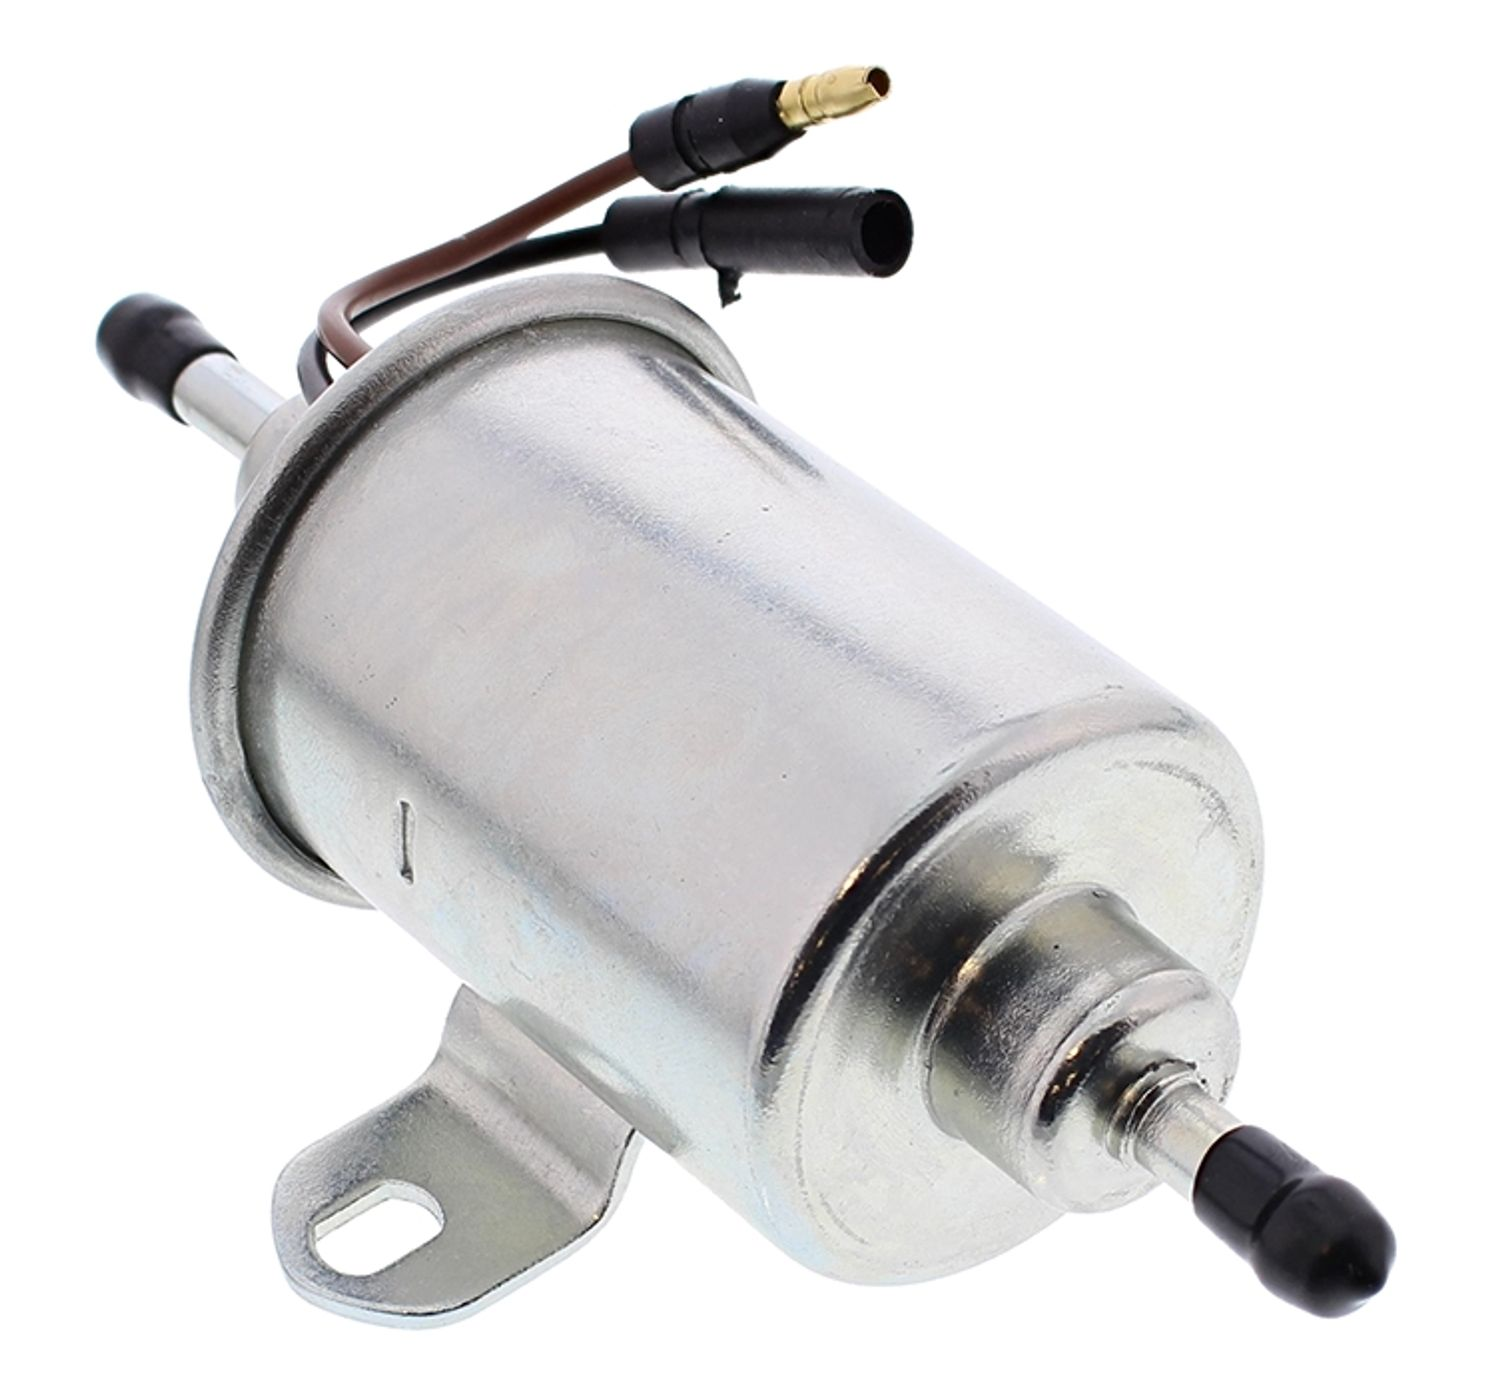 Wrp Fuel Pumps - WRP472002 image